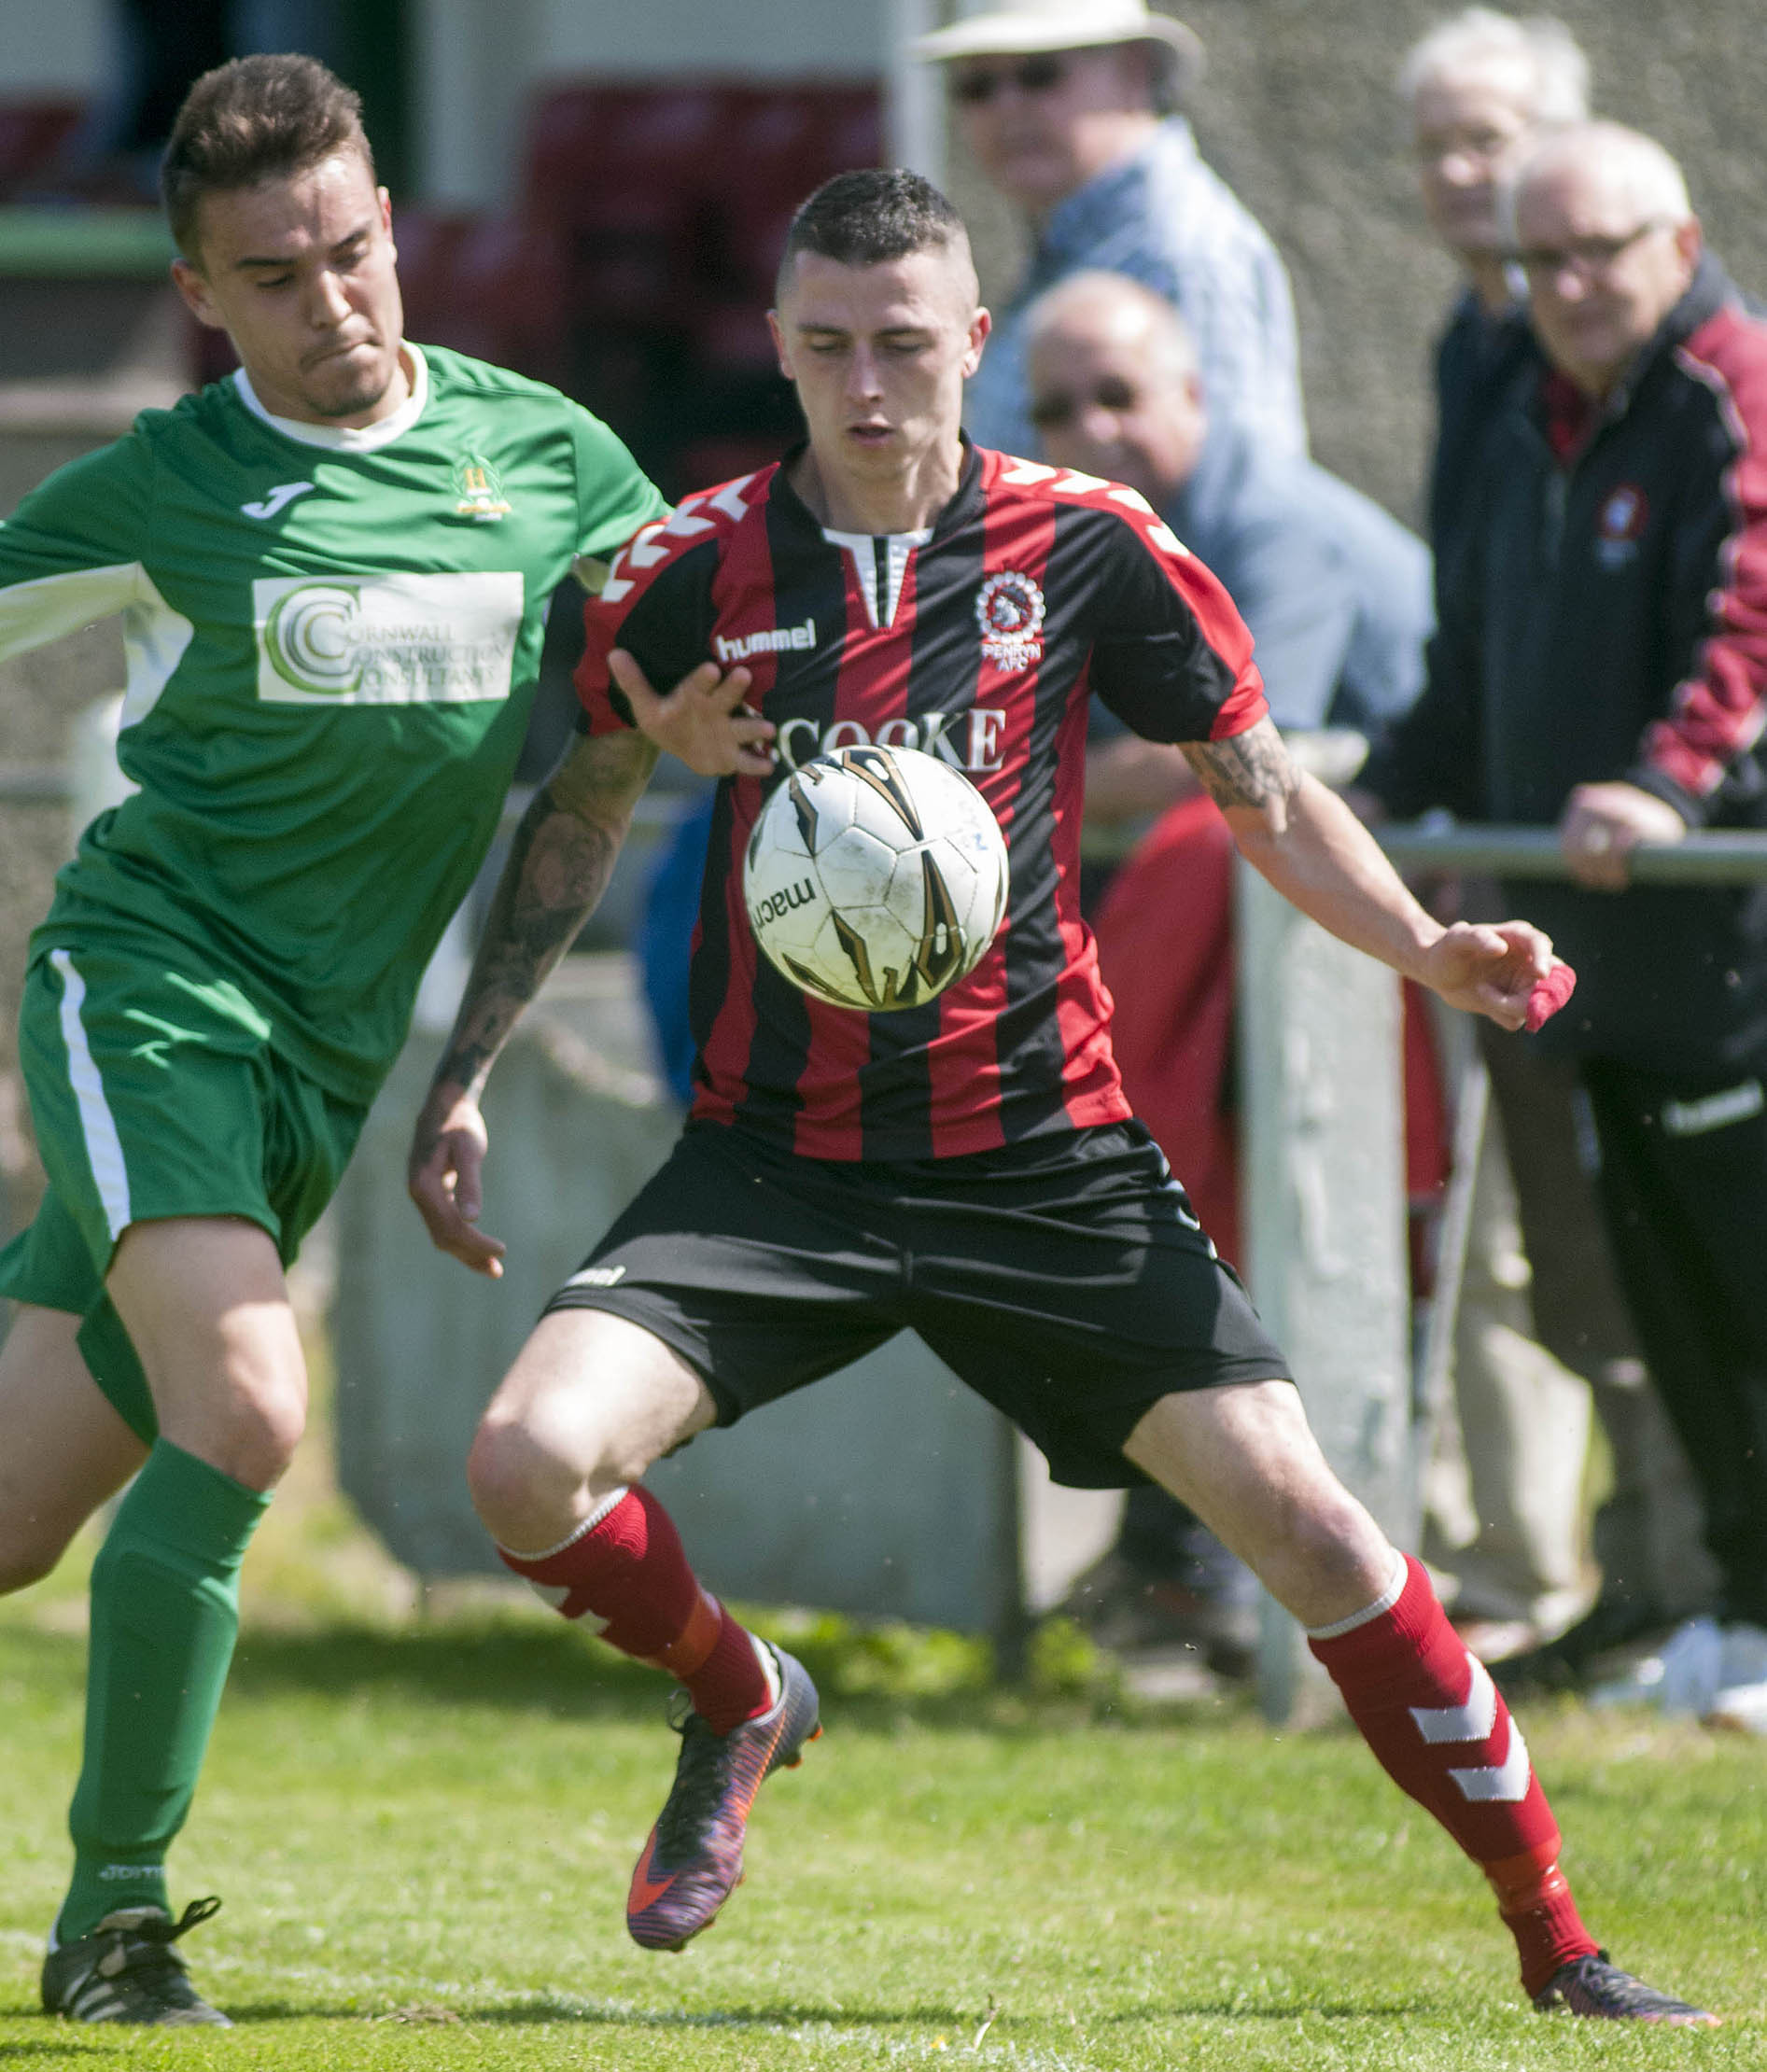 Penryn Athletic are one of 13 clubs to receive a bye into the second round of this year's Cornwall Senior Cup